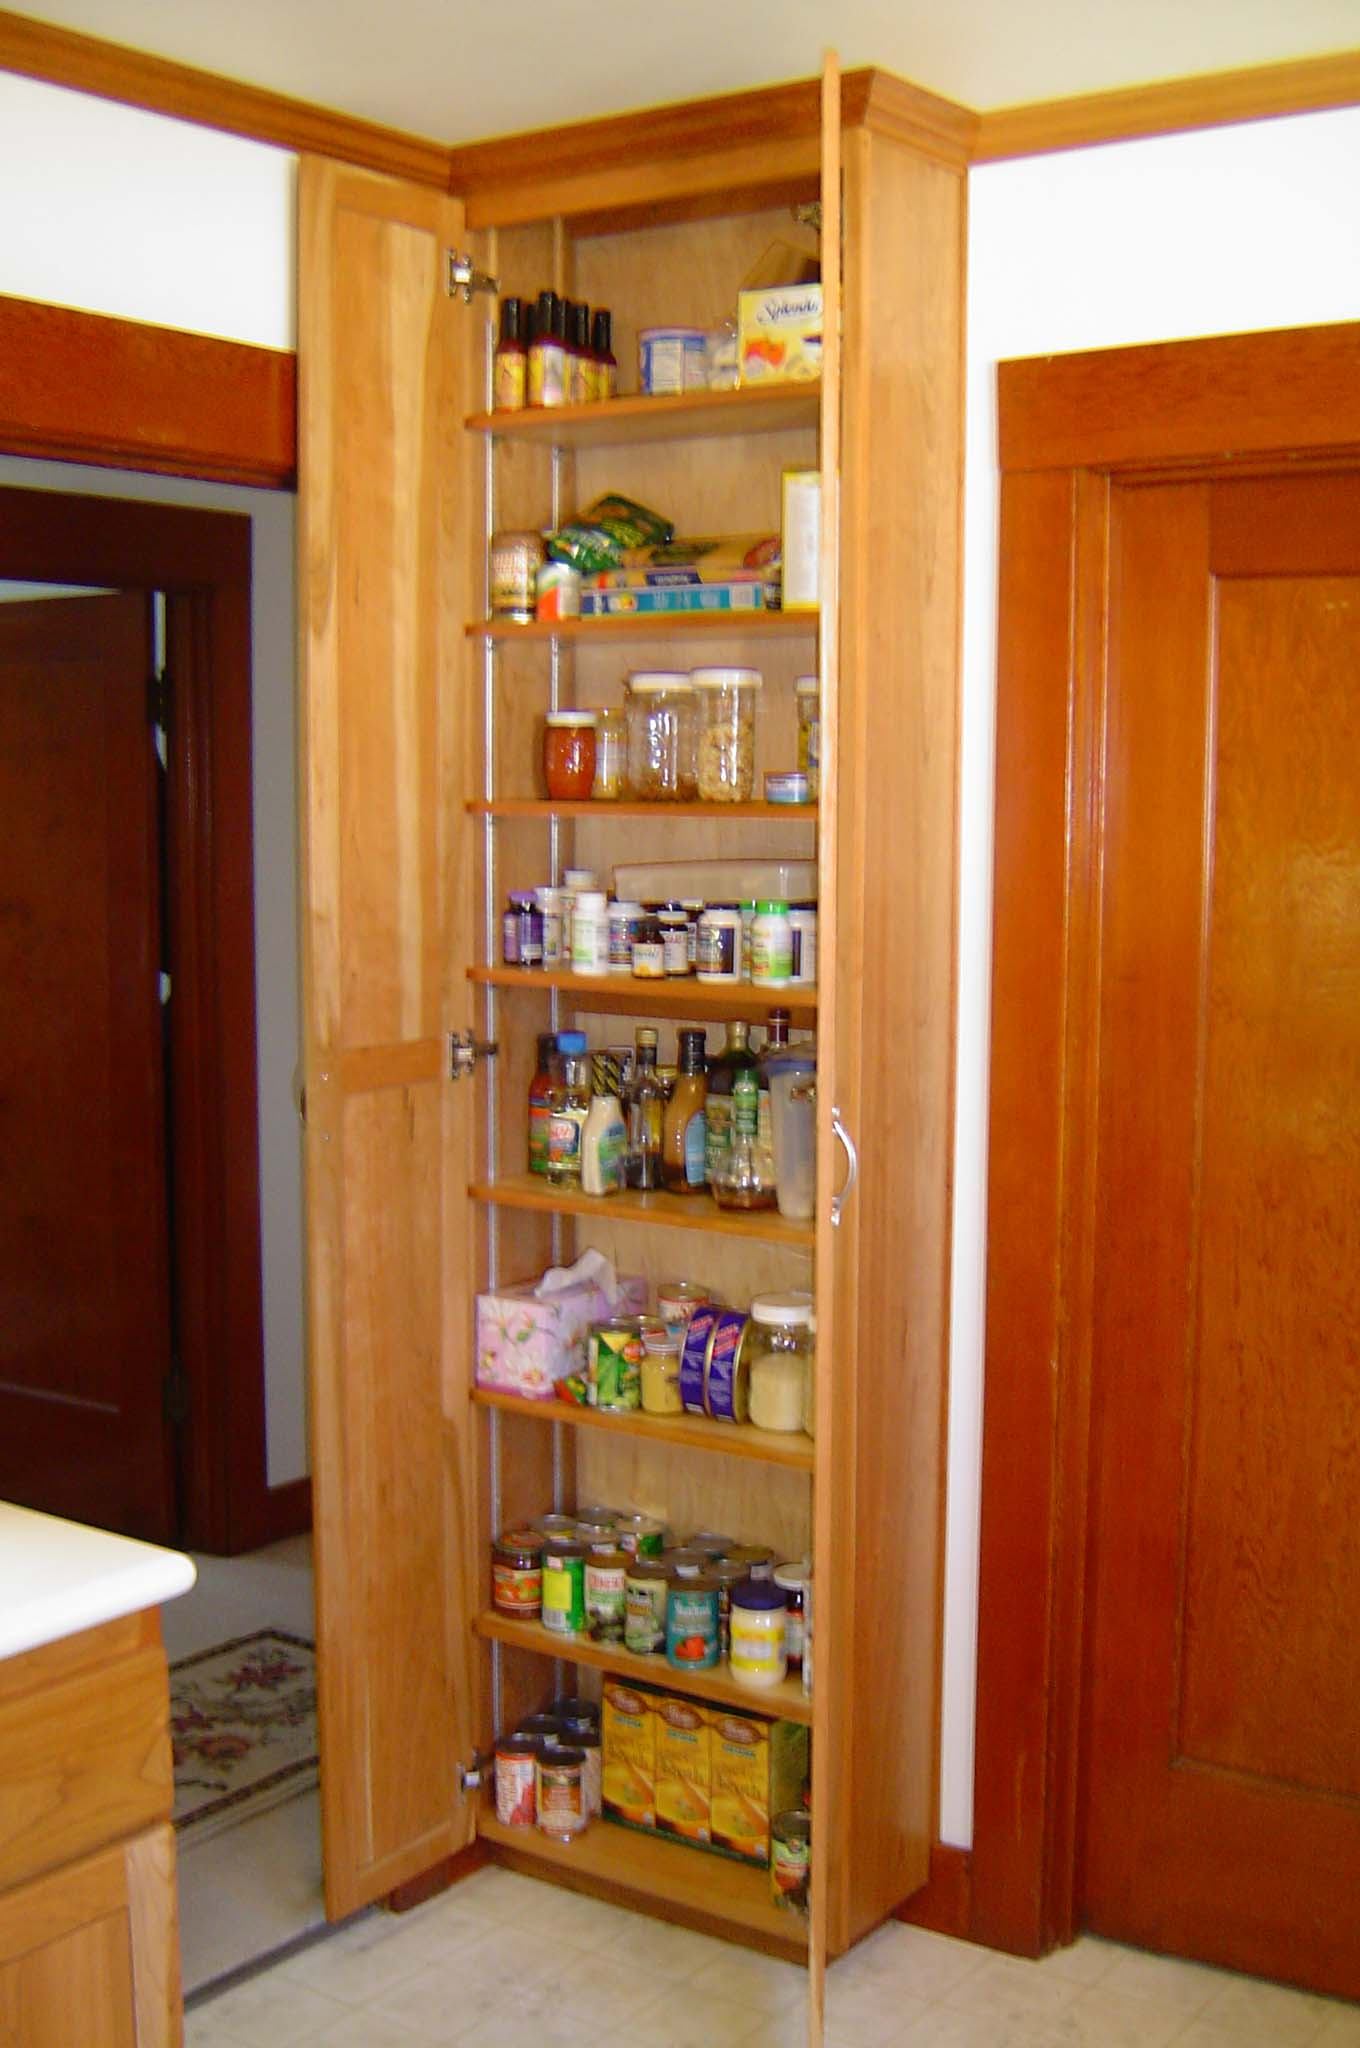 8 Inch Kitchen Cabinet 8 Inch Wide Maple Kitchen Cabinet  : dkit8a from amlibgroup.com size 1360 x 2048 jpeg 193kB